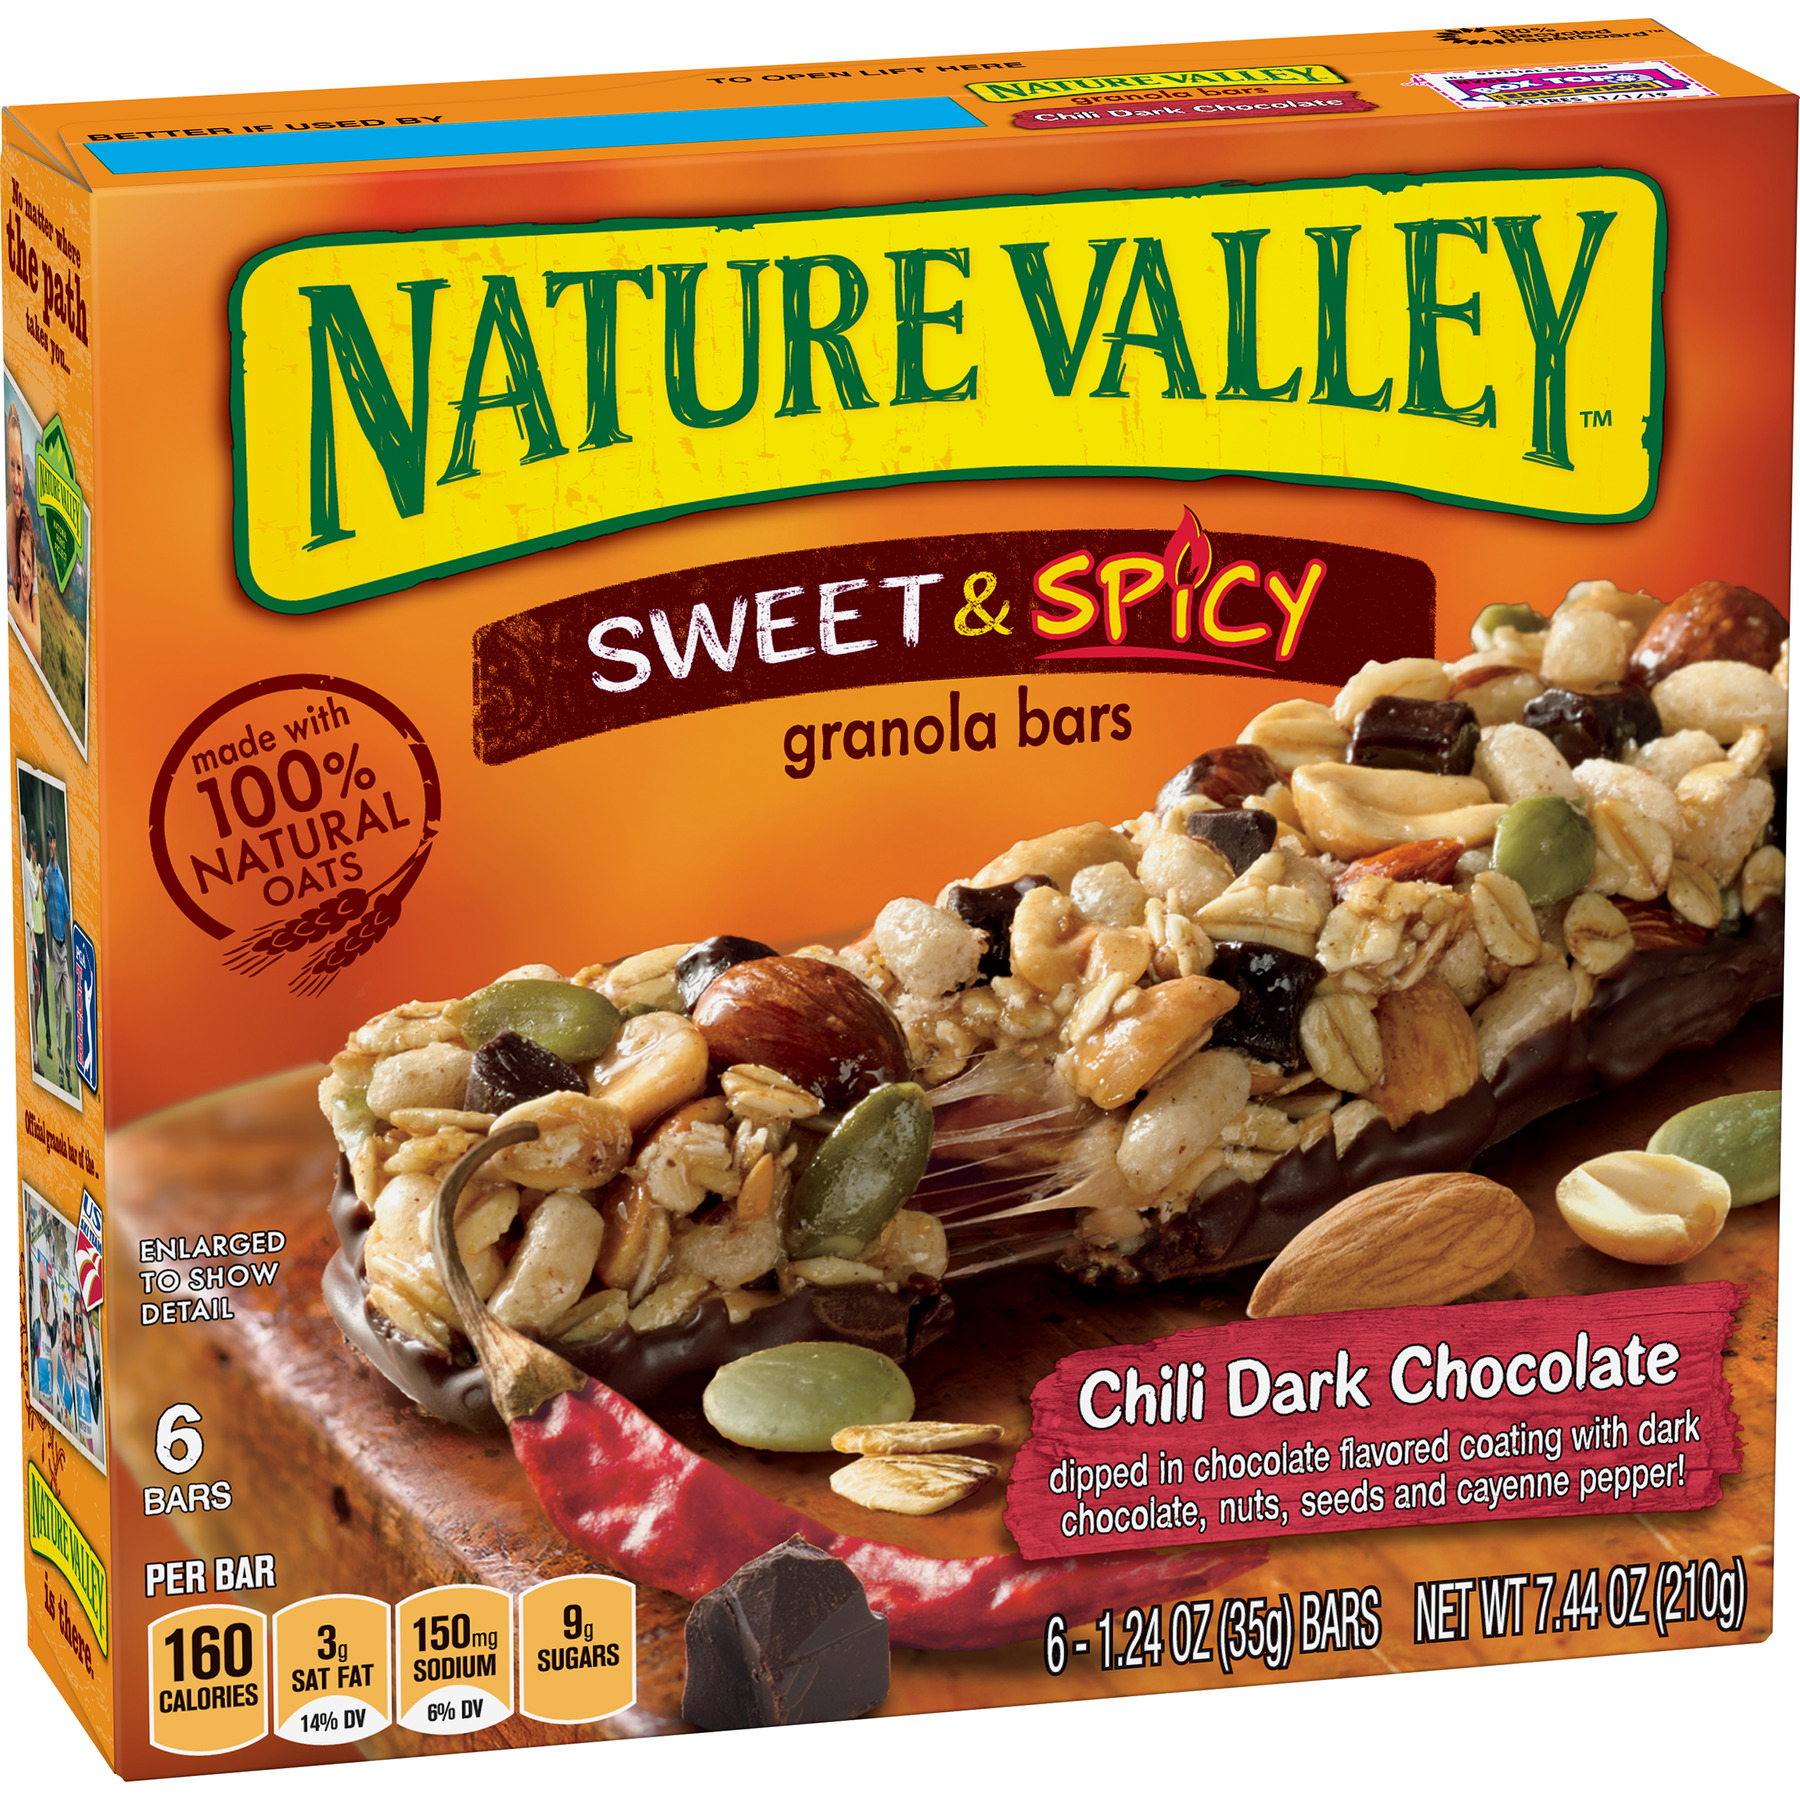 Nature Valley Granola Bars Sweet & Spicy Chili Dark Chocolate 6 Count